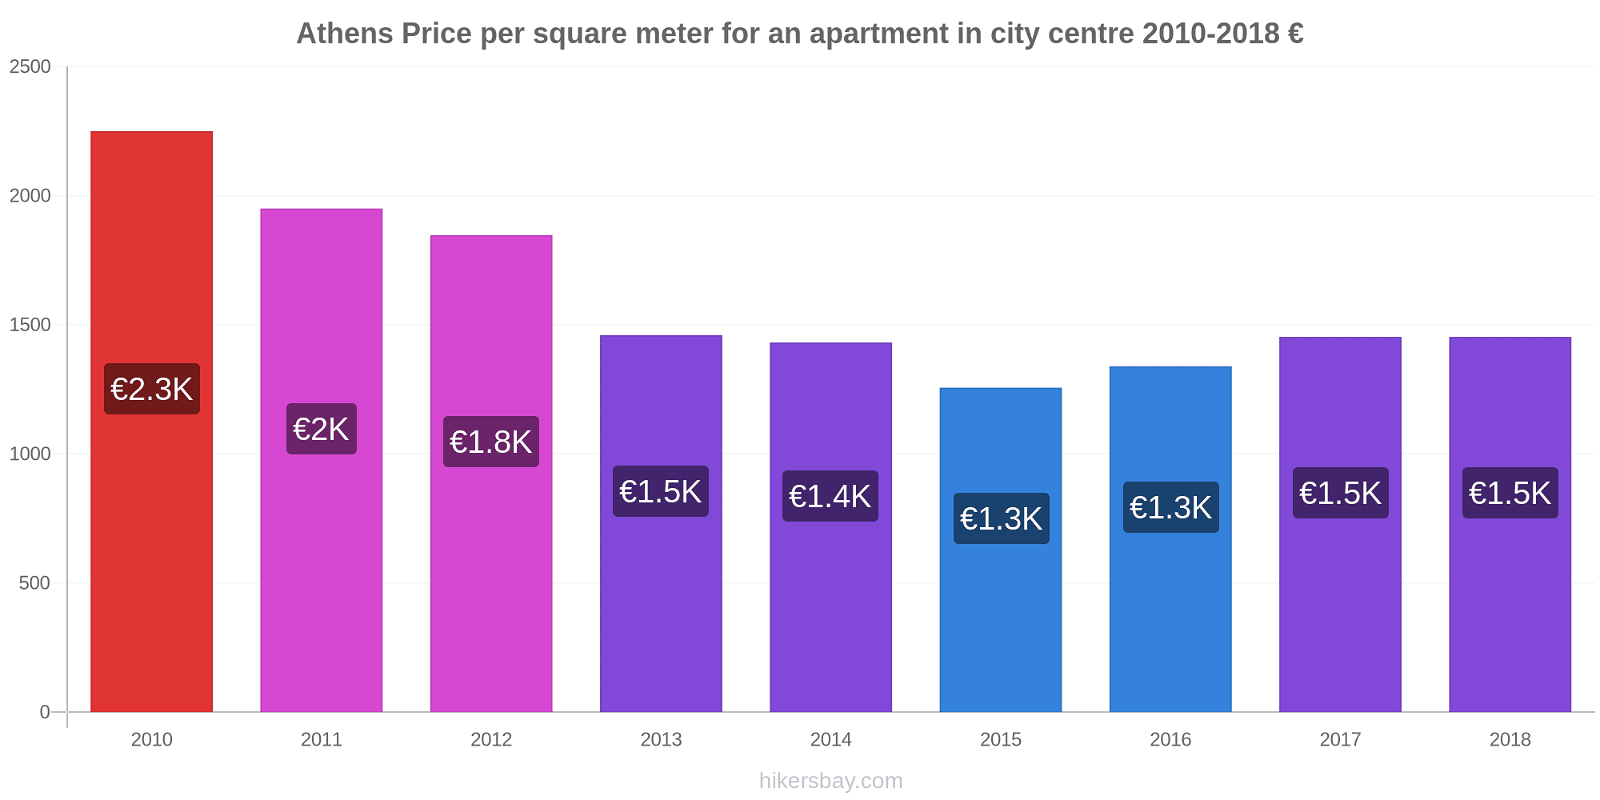 Athens price changes Price per square meter for an apartment in city centre hikersbay.com